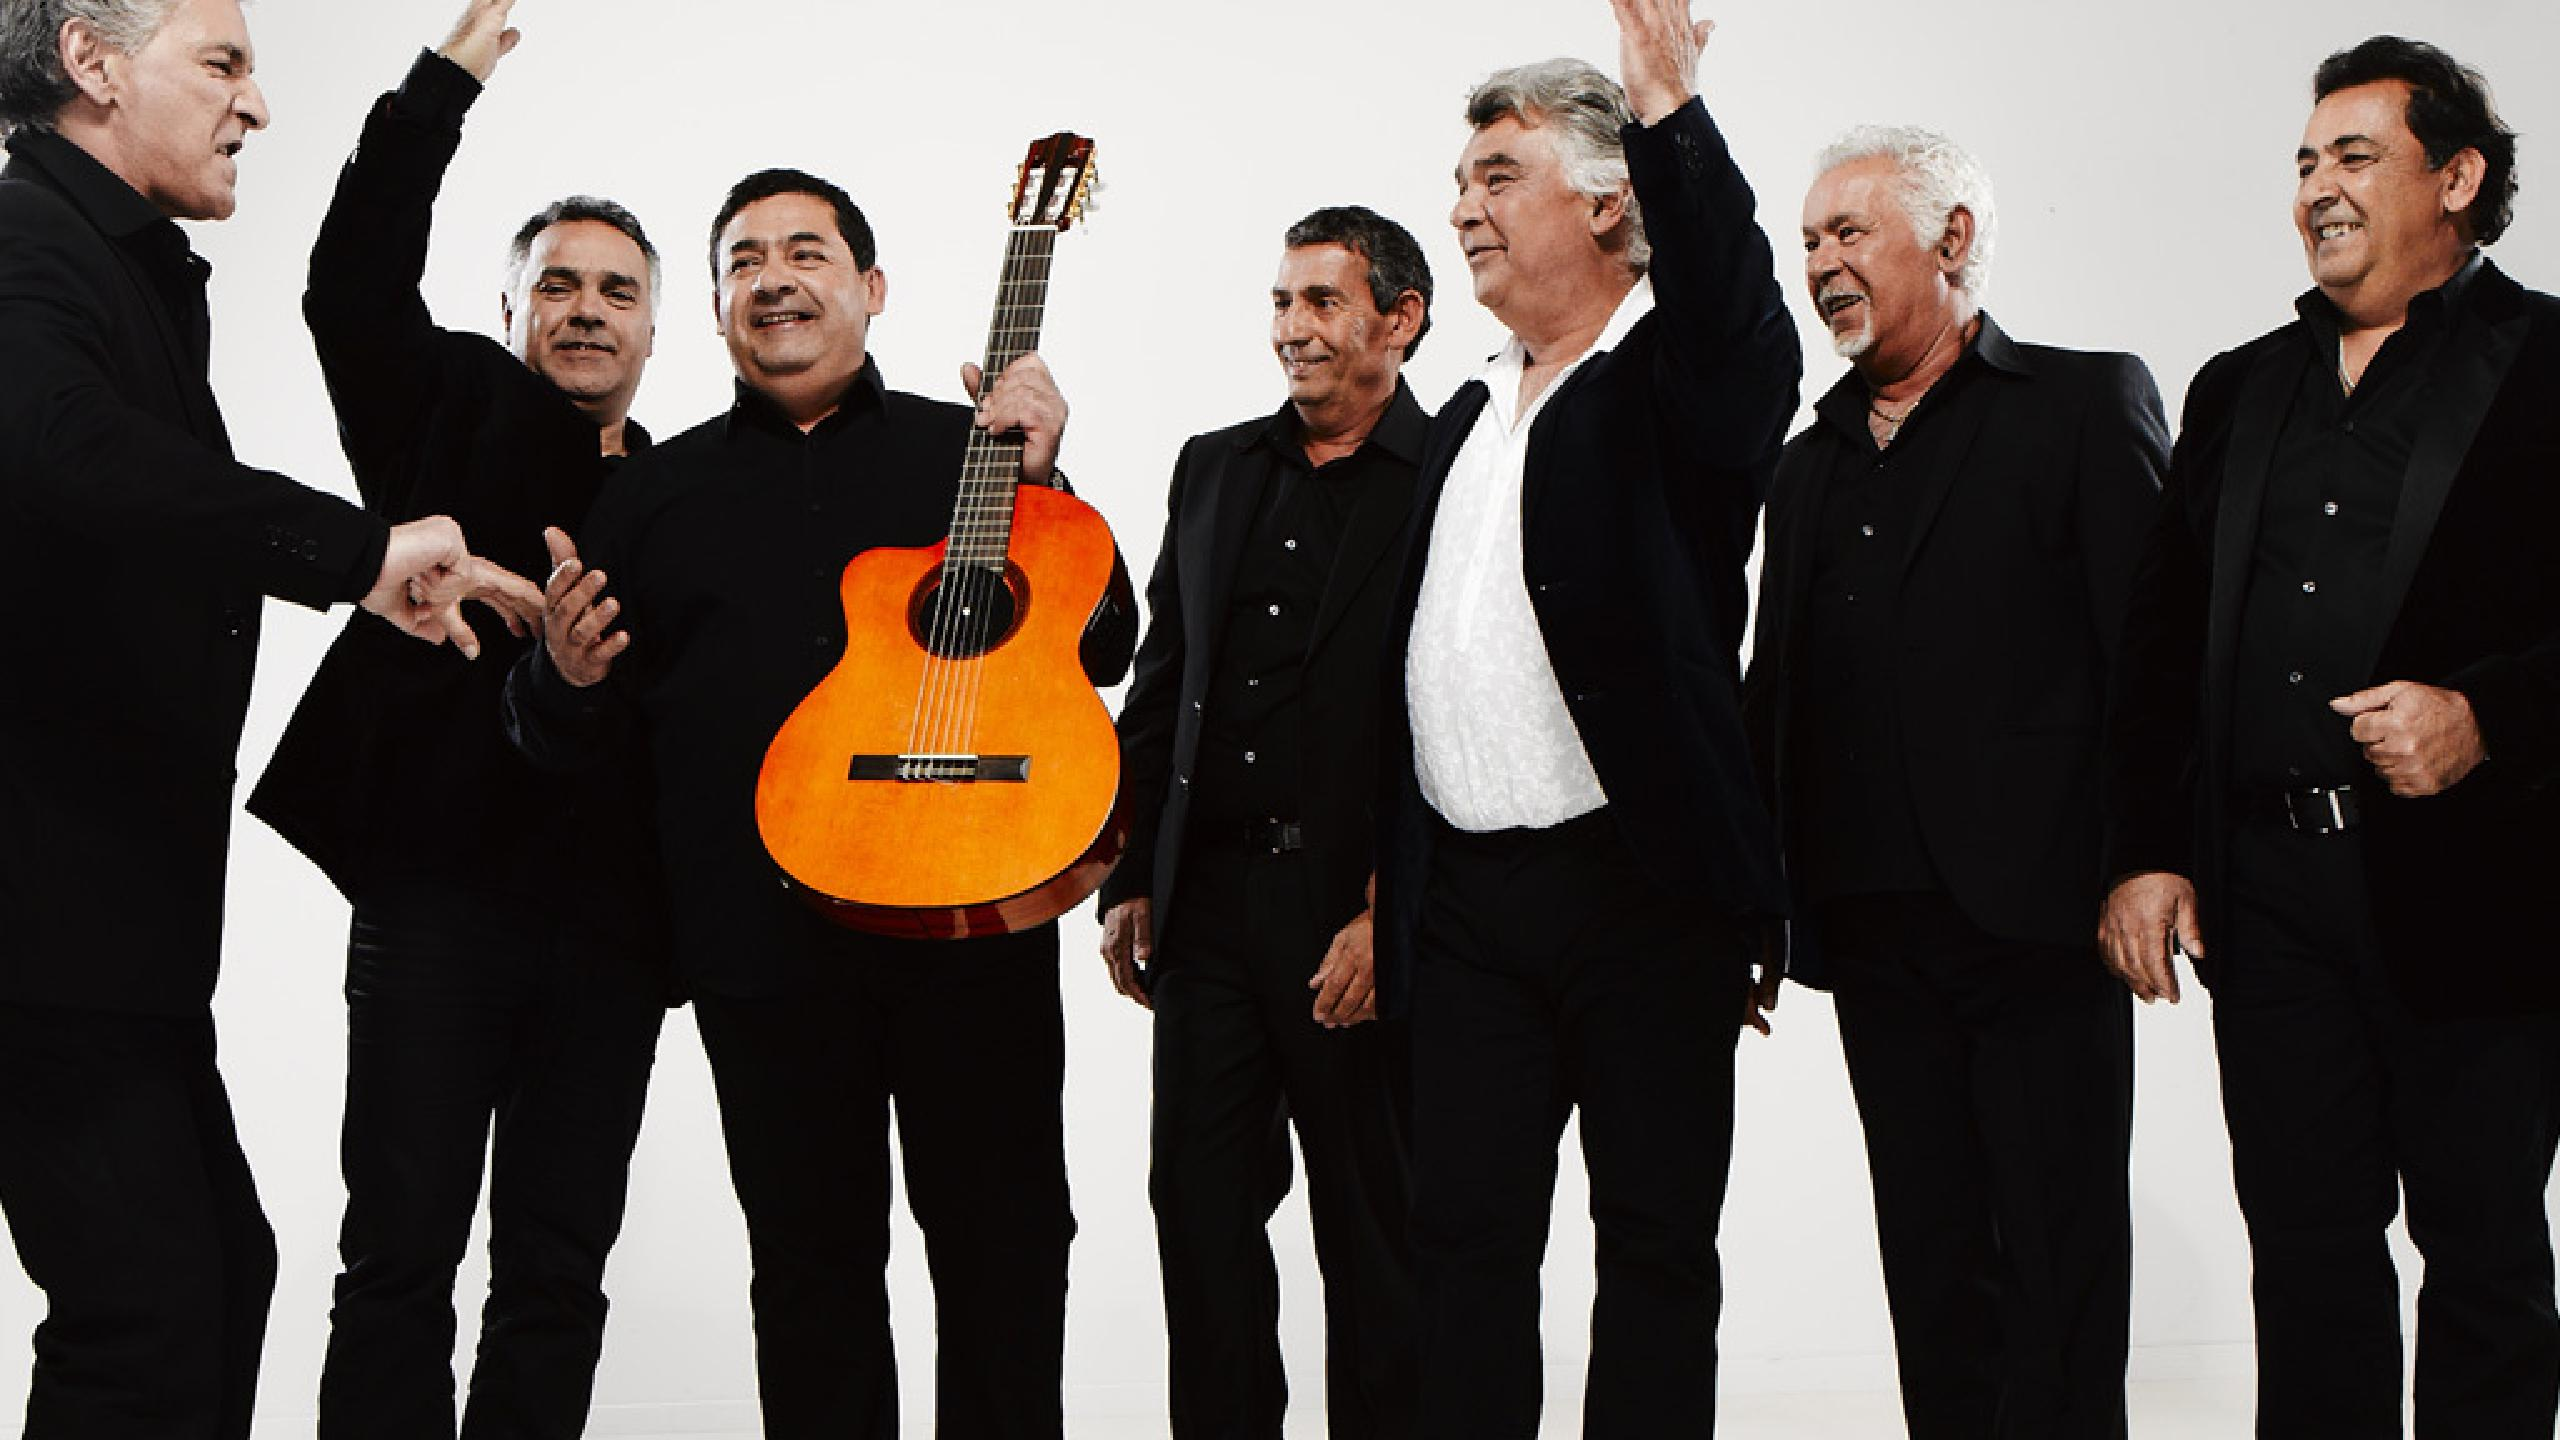 Gipsy Kings tour dates 2021 2022. Gipsy Kings tickets and concerts | Wegow United States